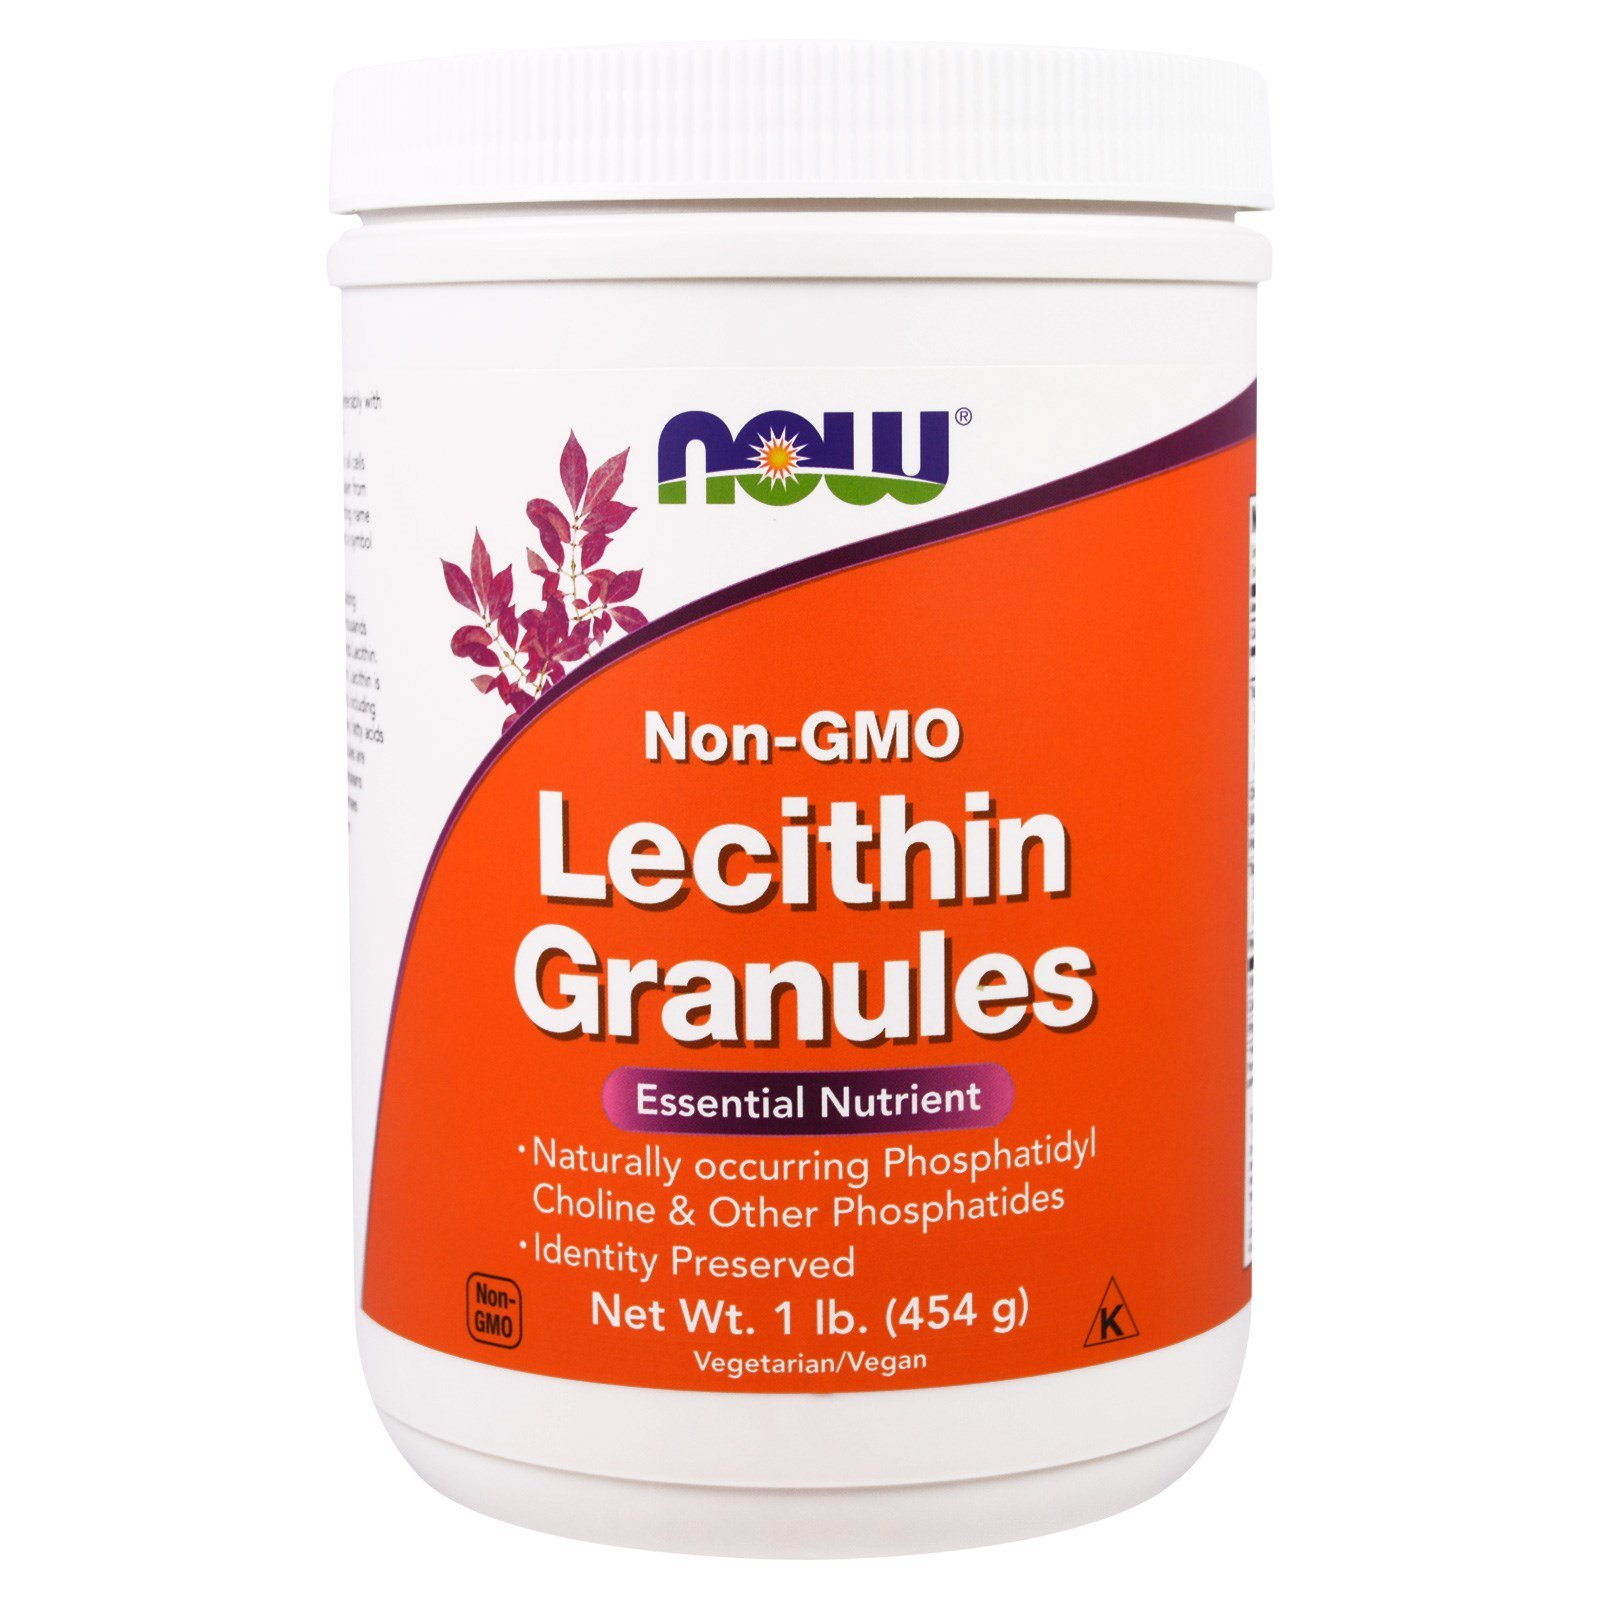 Лецитин в гранулах, Lecithin, Now Foods, без ГМО, 454 г